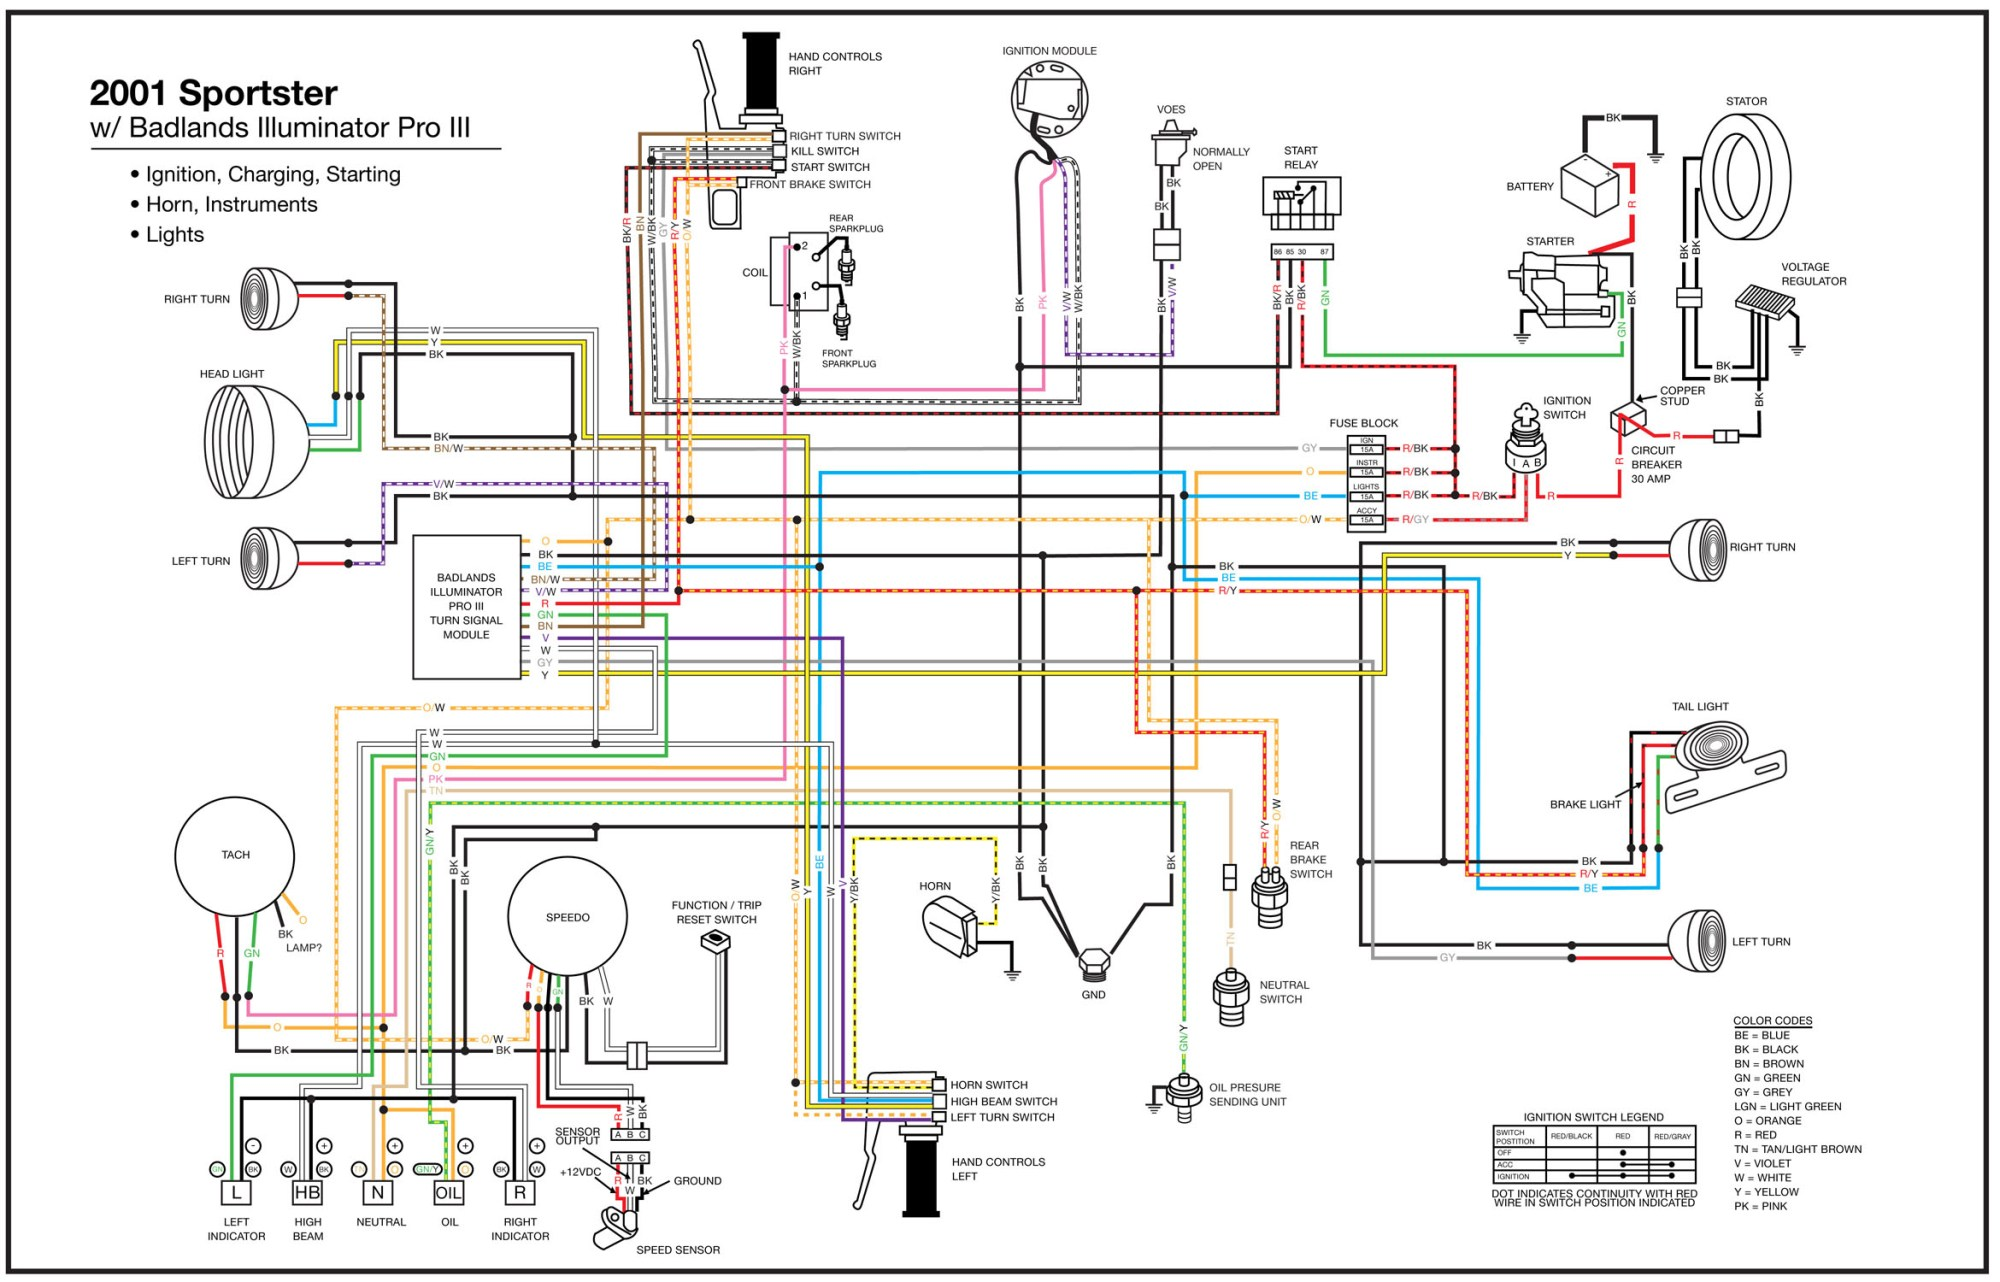 hight resolution of wire schematics 2004 harley davidson wiring diagrams recent flhx wiring diagram 2004